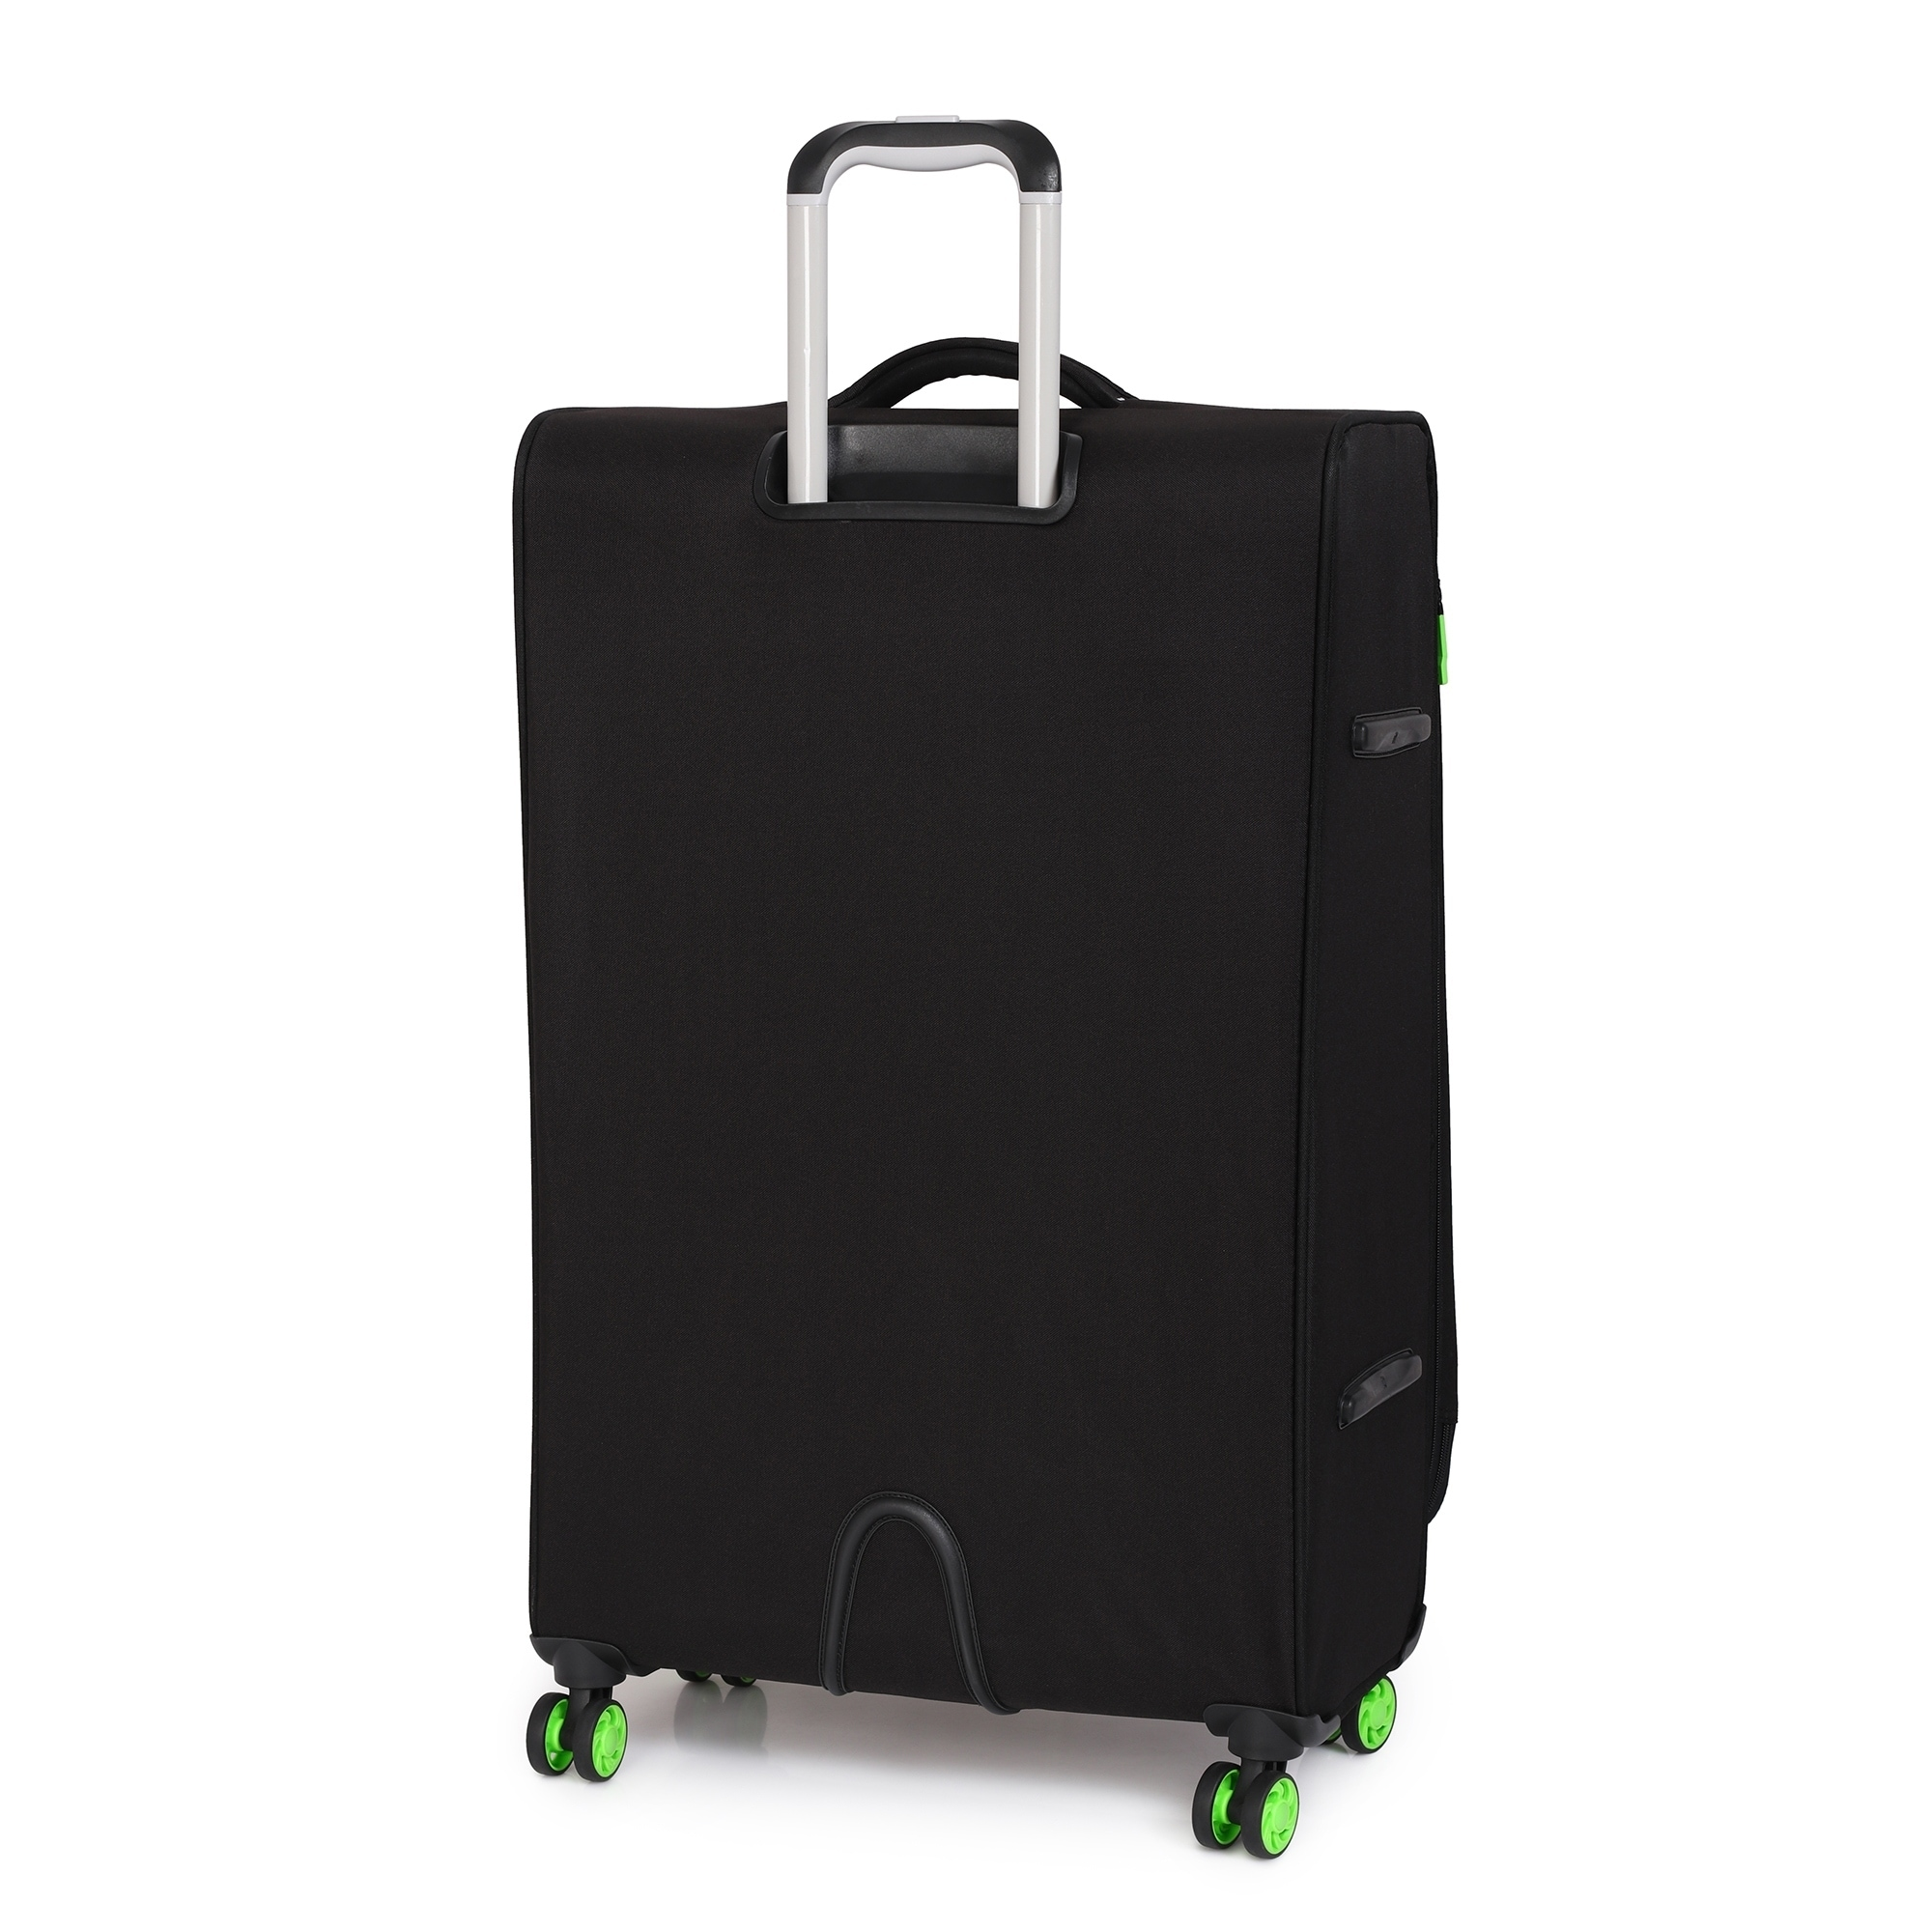 it-luggage-Filament-27-4-inch-Lightweight-Expandable-Spinner-Suitcase-27-4-034 thumbnail 10